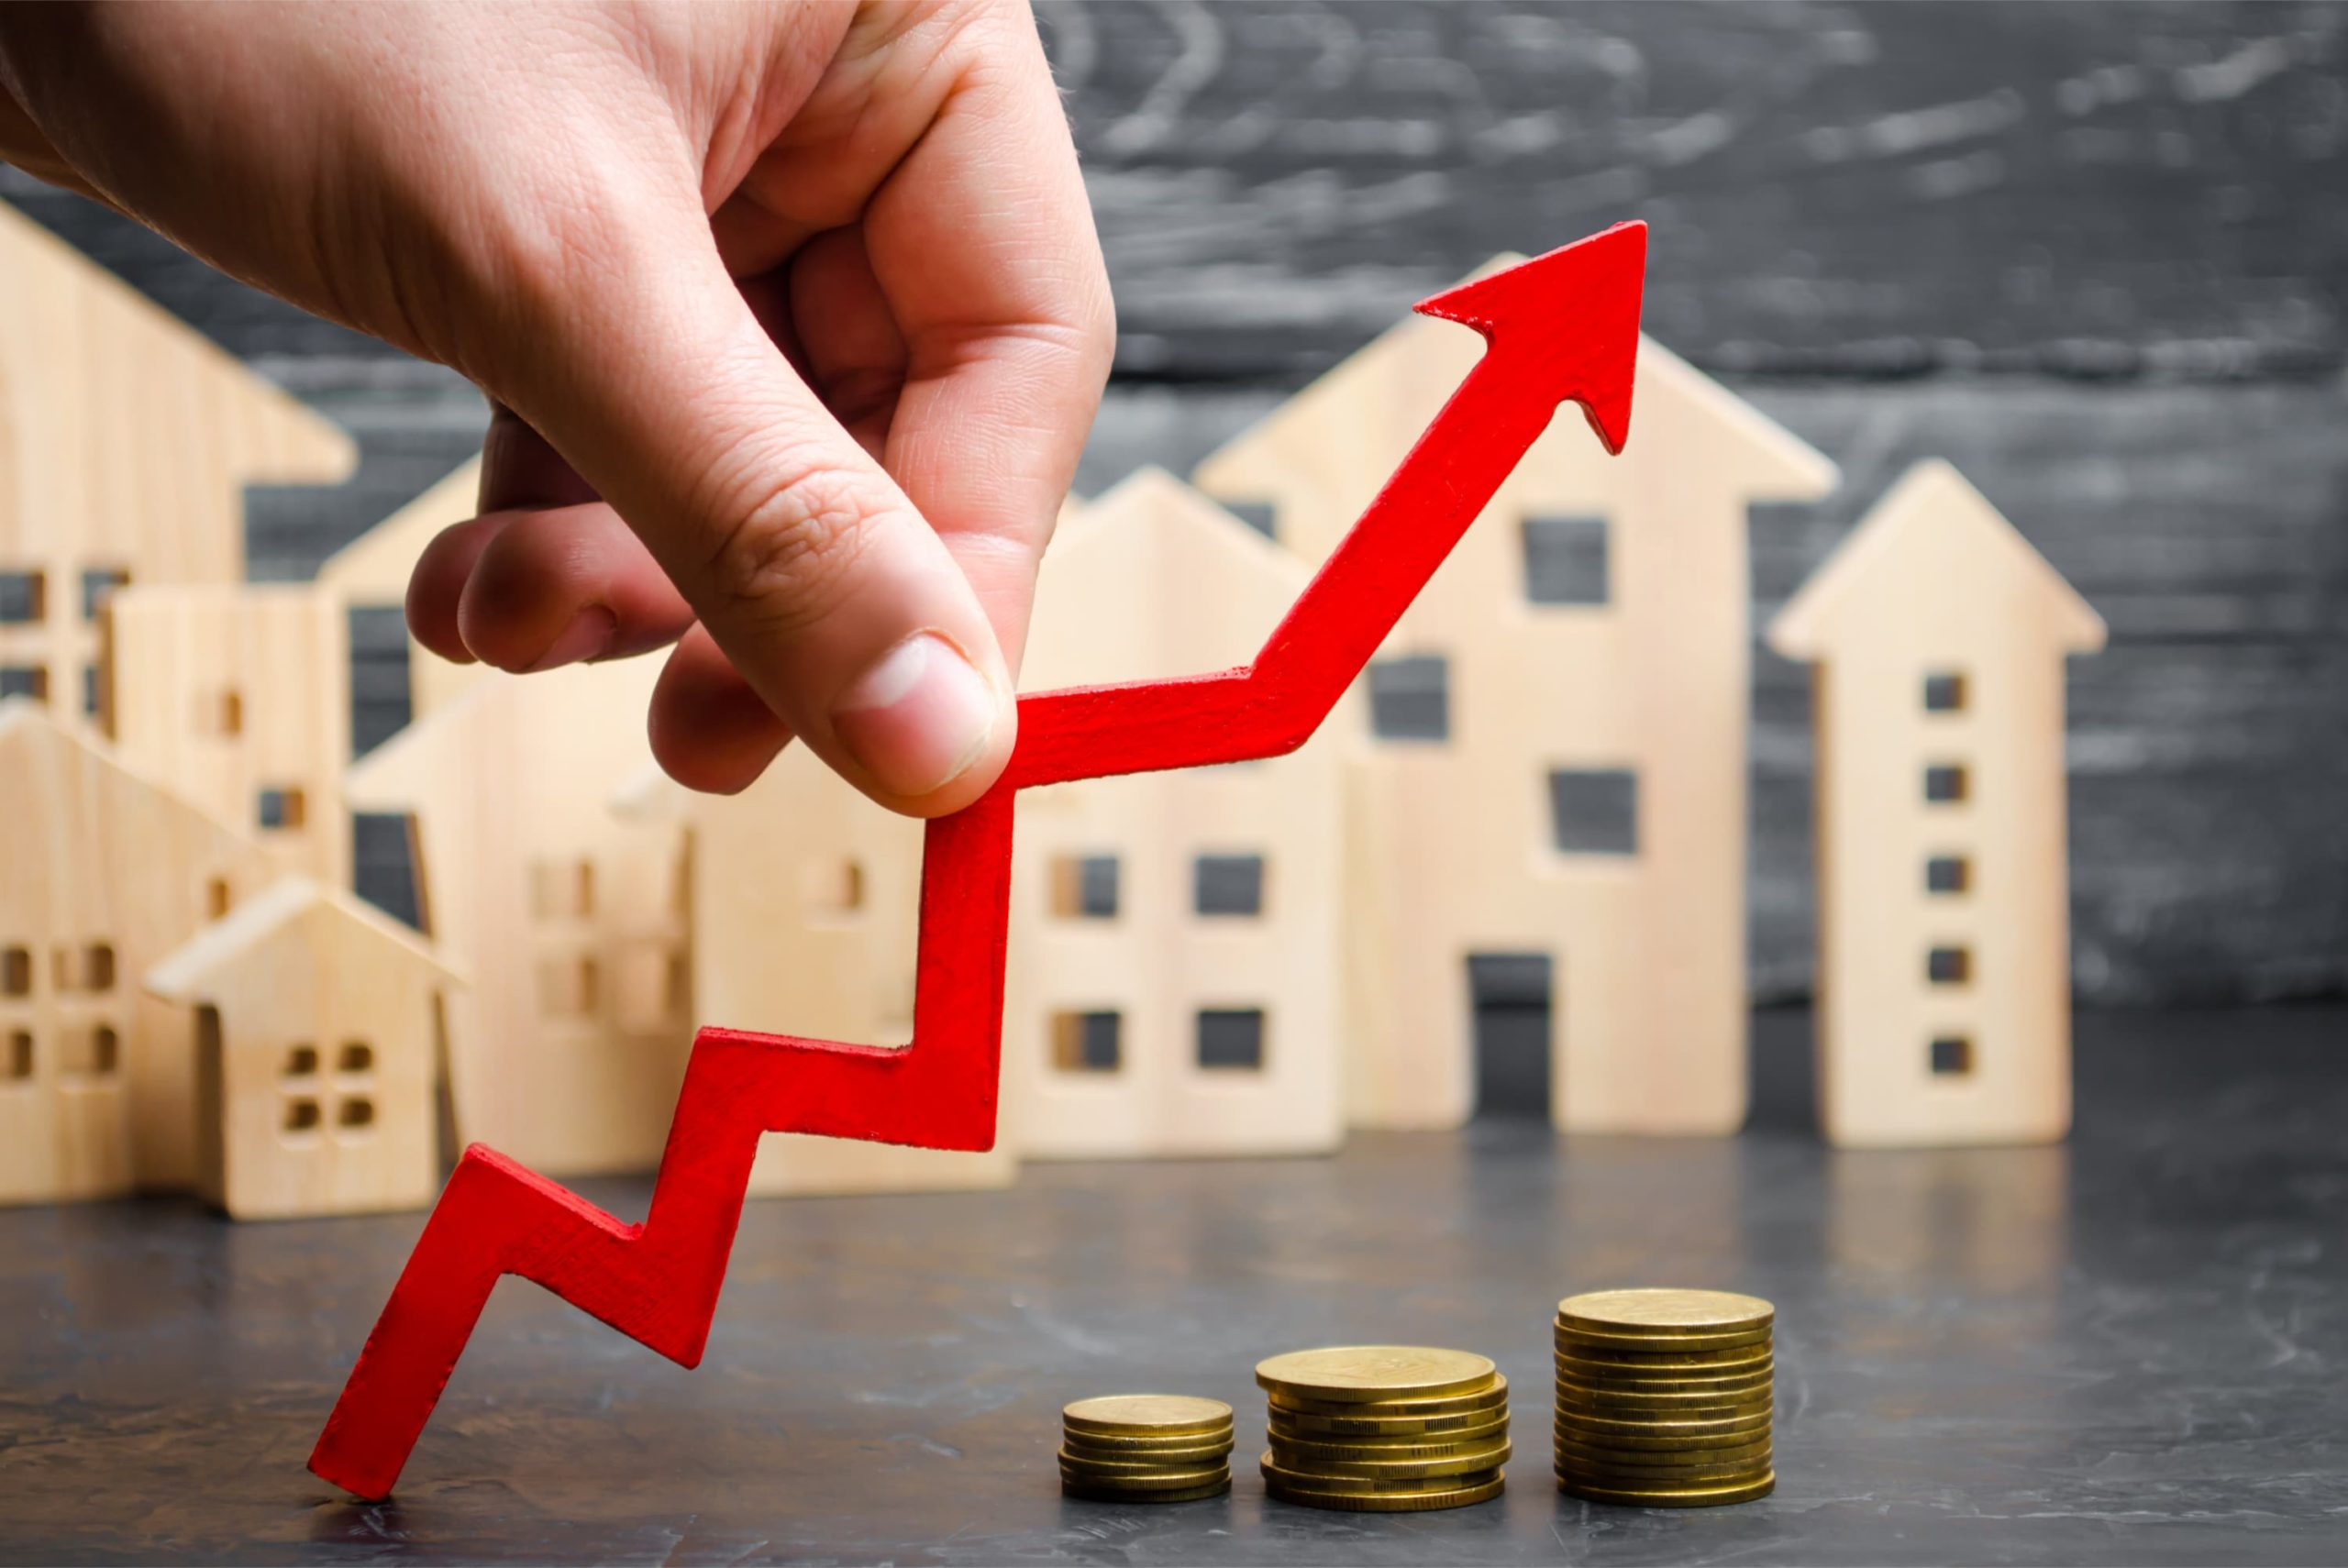 Exploring Real Estate Investments That Offer Income Generation Along With Capital Appreciation